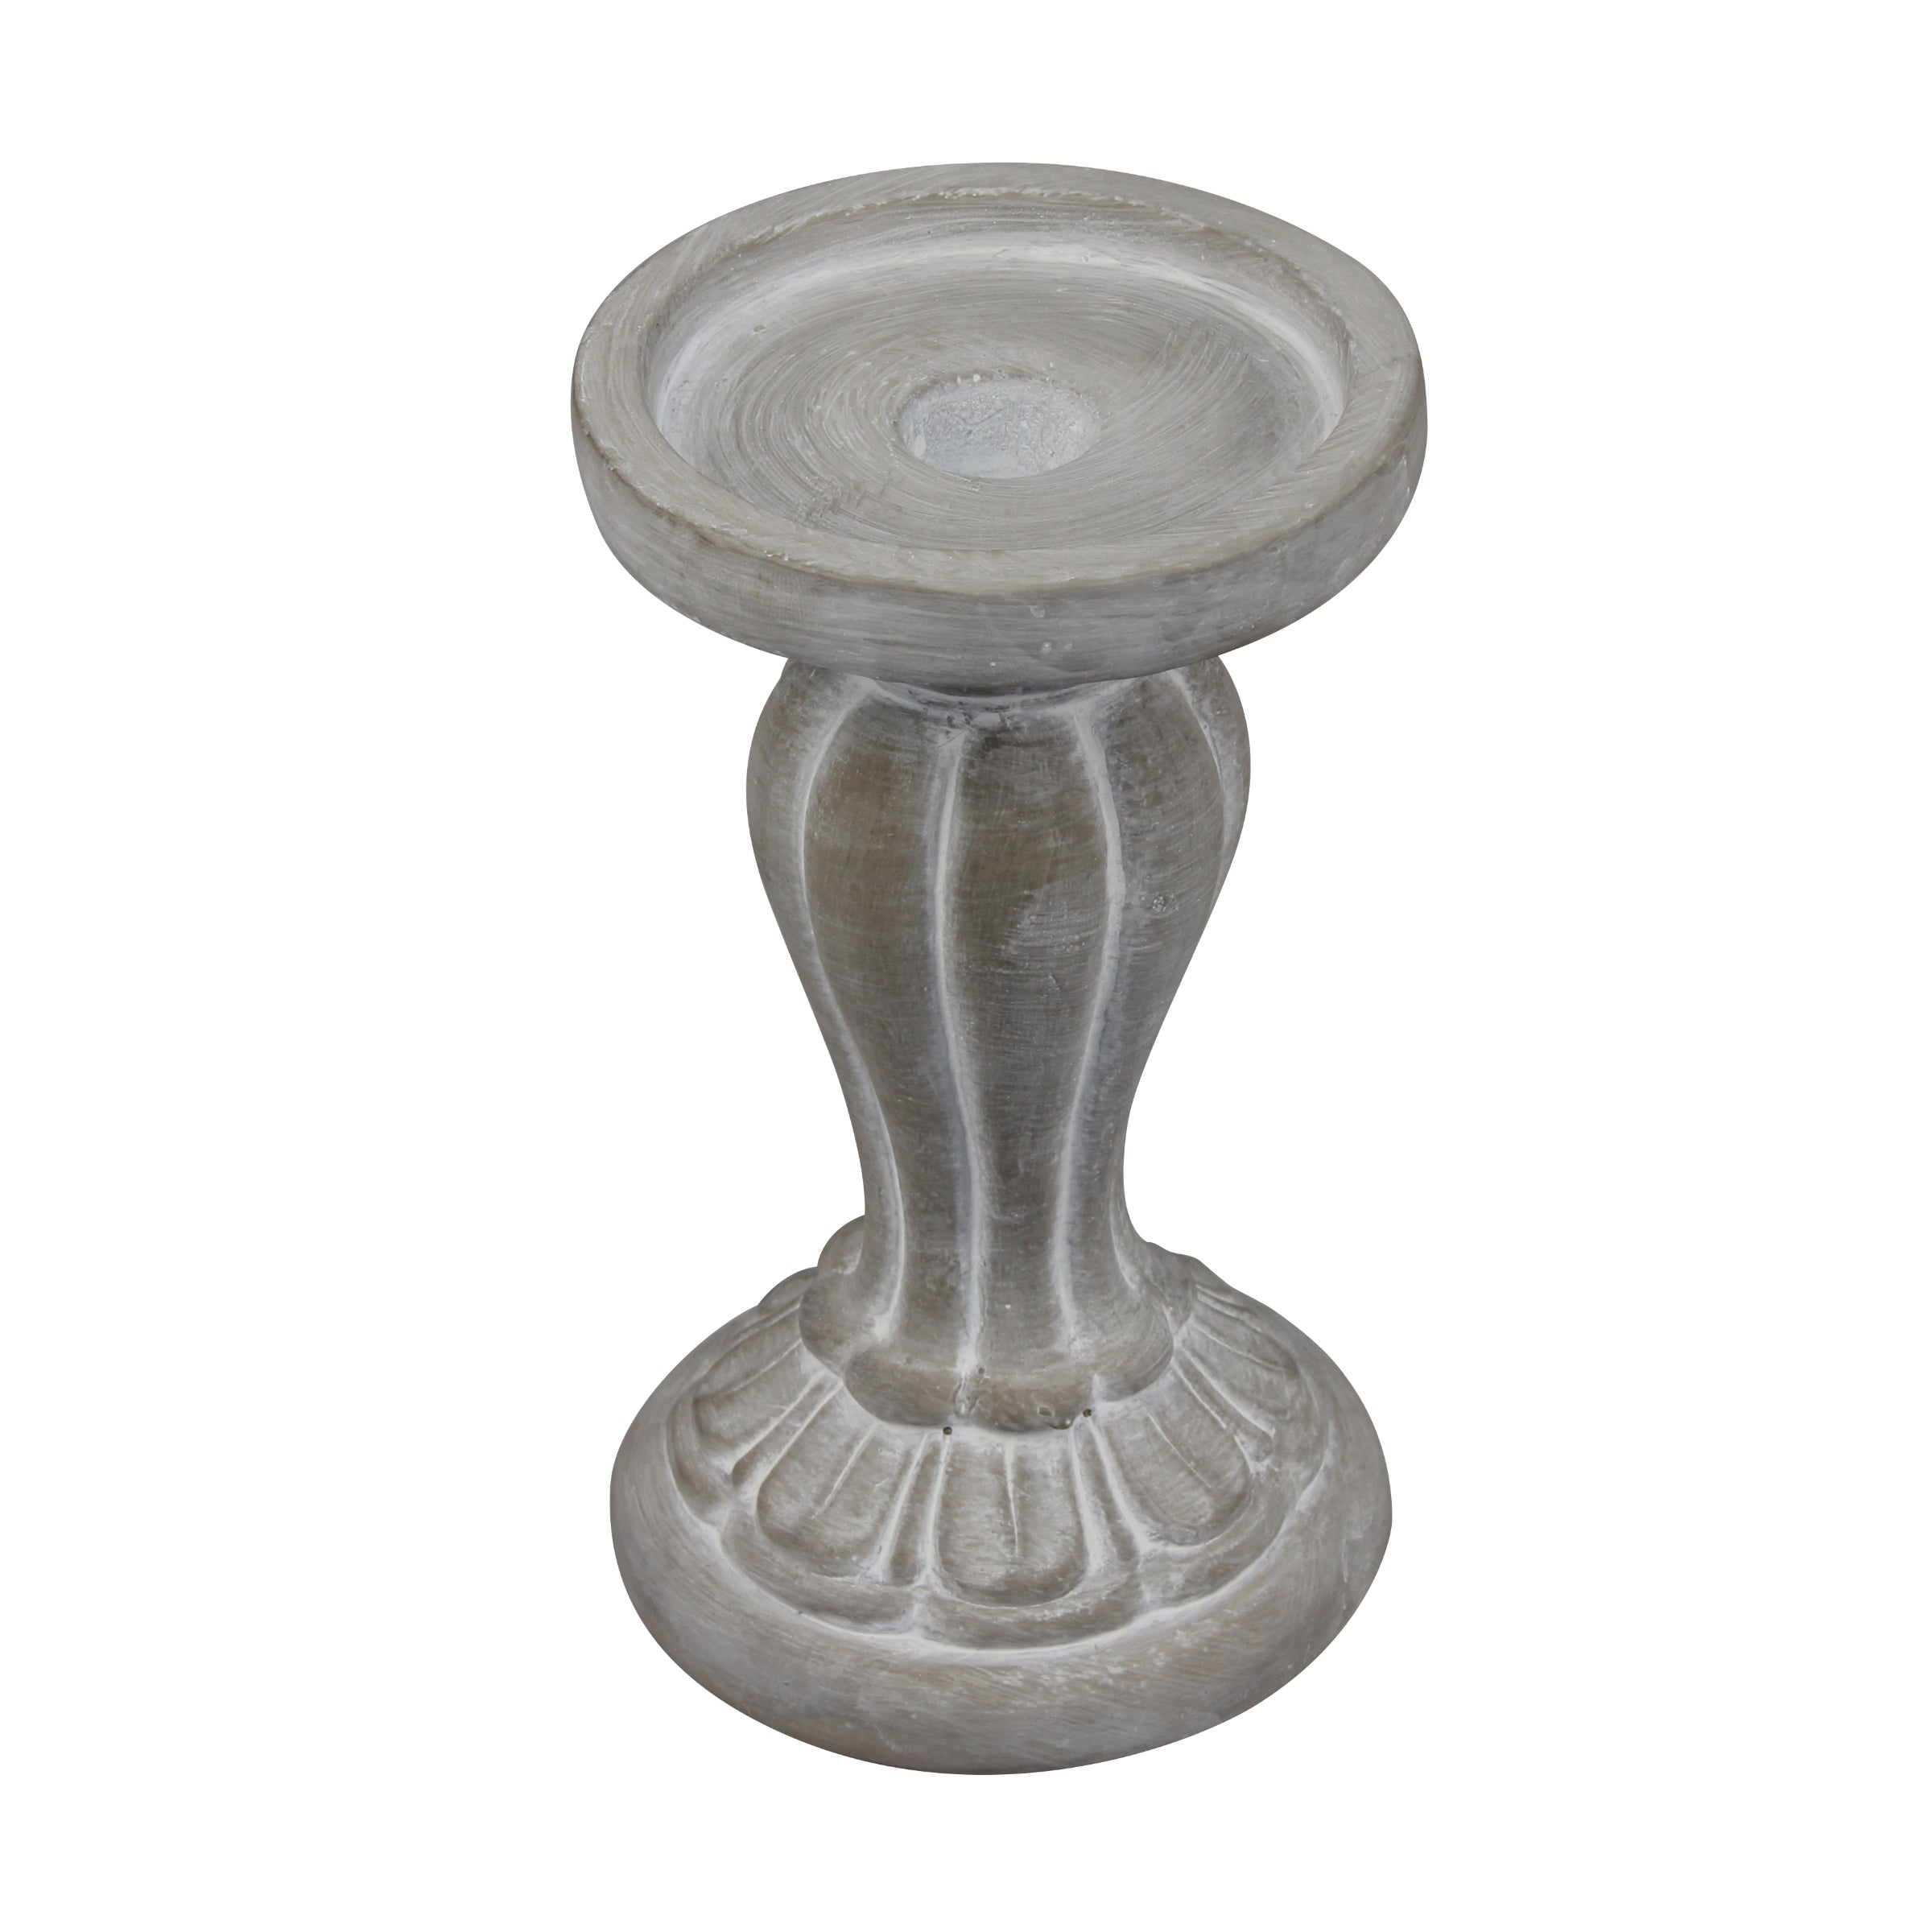 Briarwood Decorative Molded Cement Pillar Candle Holder